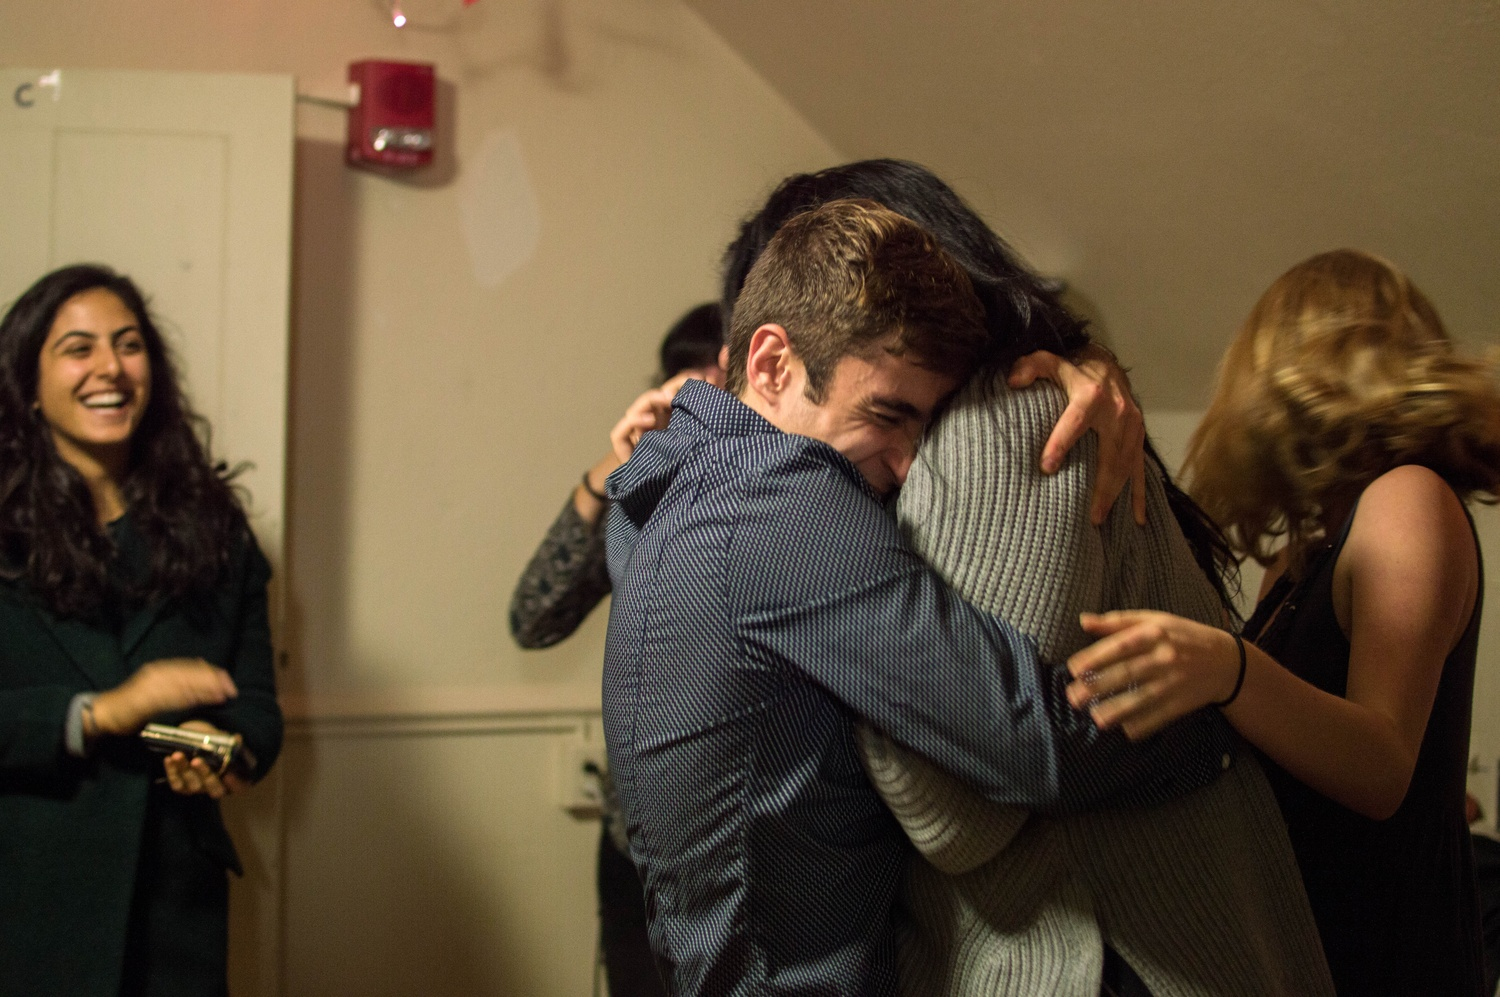 Shaiba Rather '17 and Daniel V. Banks '17 embrace upon winning the election for Undergraduate Council President and Vice President.  Coming in second place were William A. Greenlaw and William F. Morris IV '17, followed by a third place showing of Nick E. Gajdzik '16-17 and Jeffrey M. Ott '16-17.